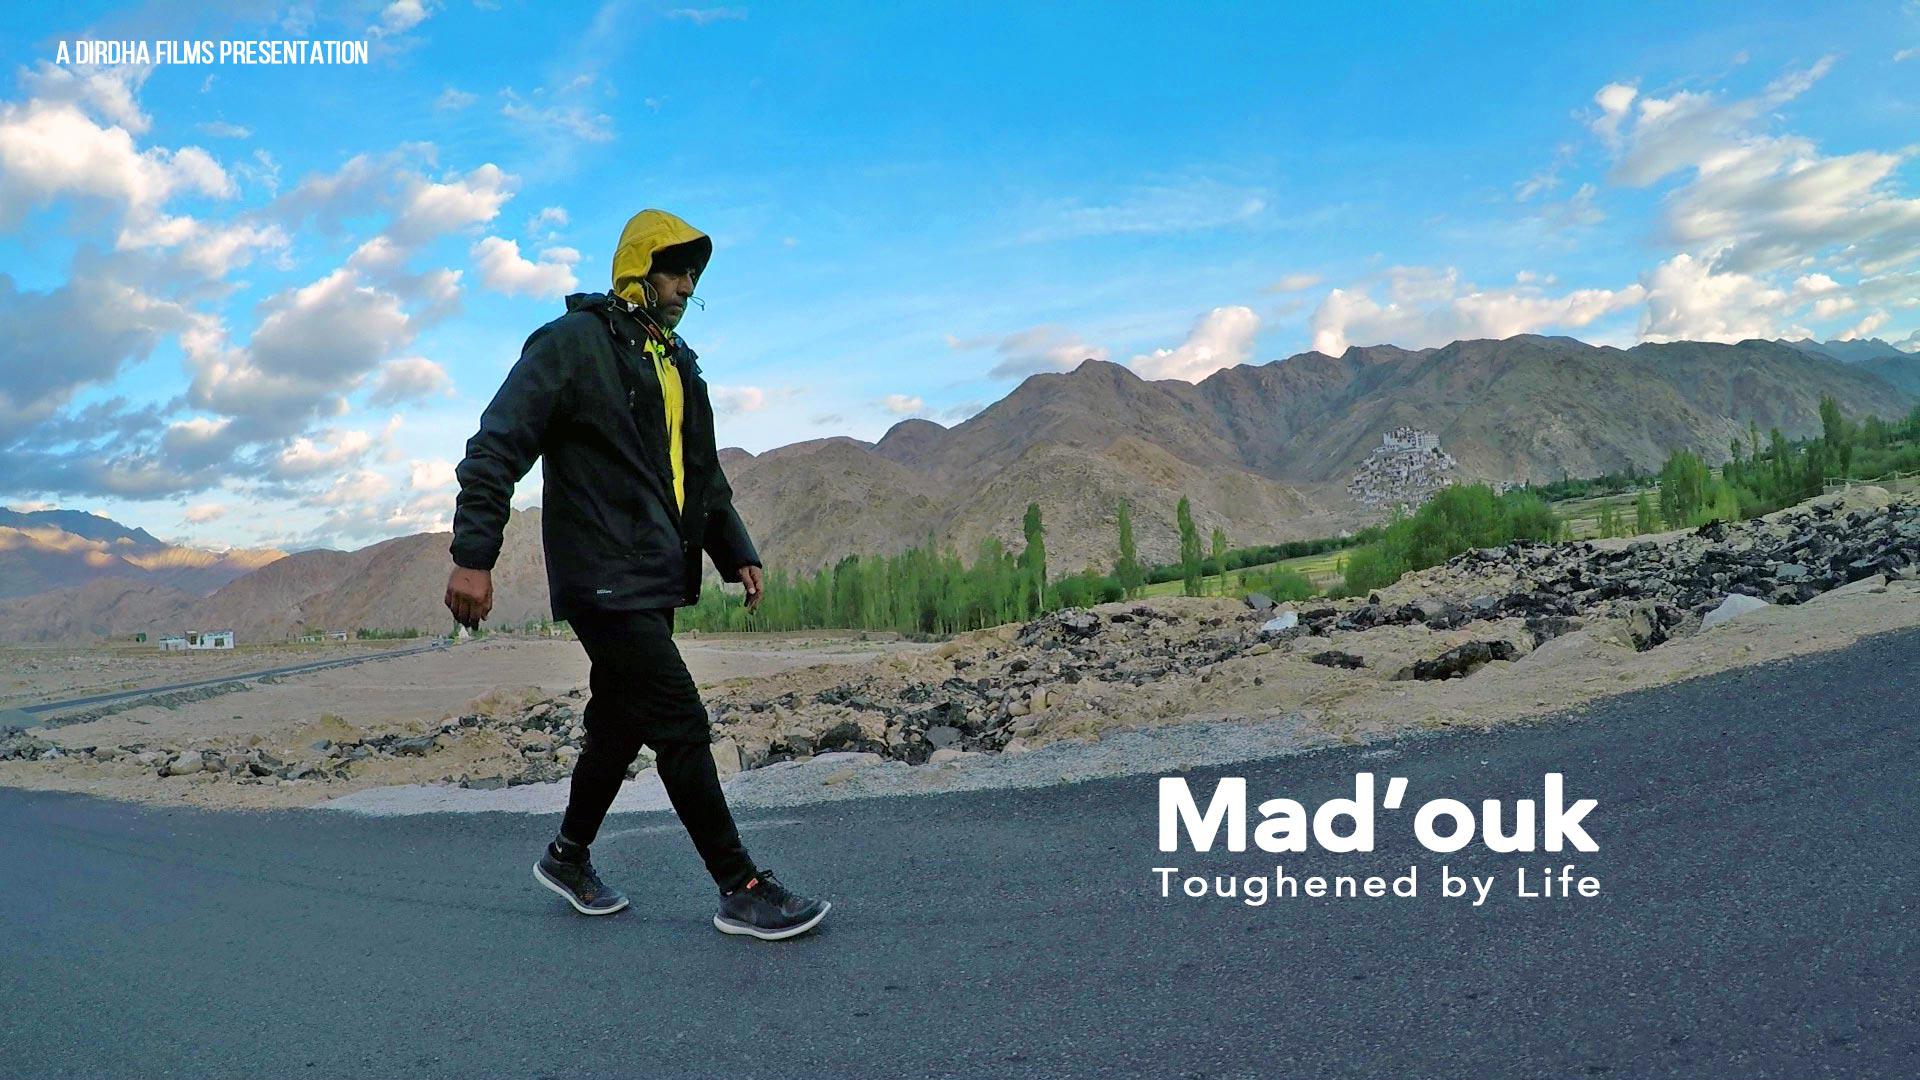 Mad'ouk -Toughened by Life